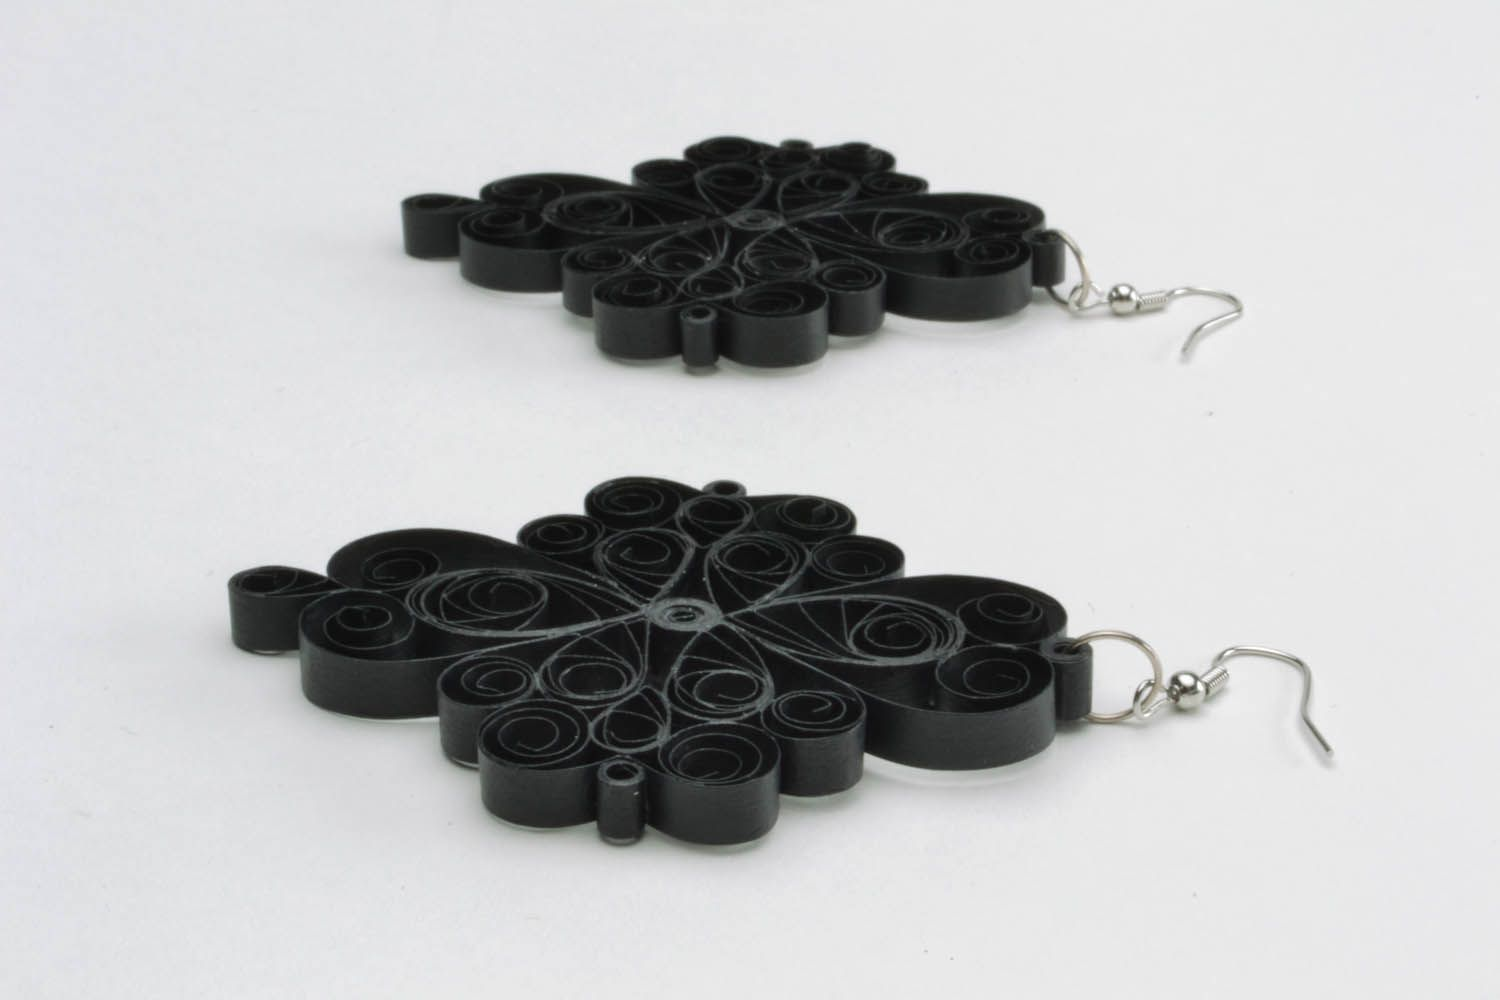 Handmade lace black earrings photo 4